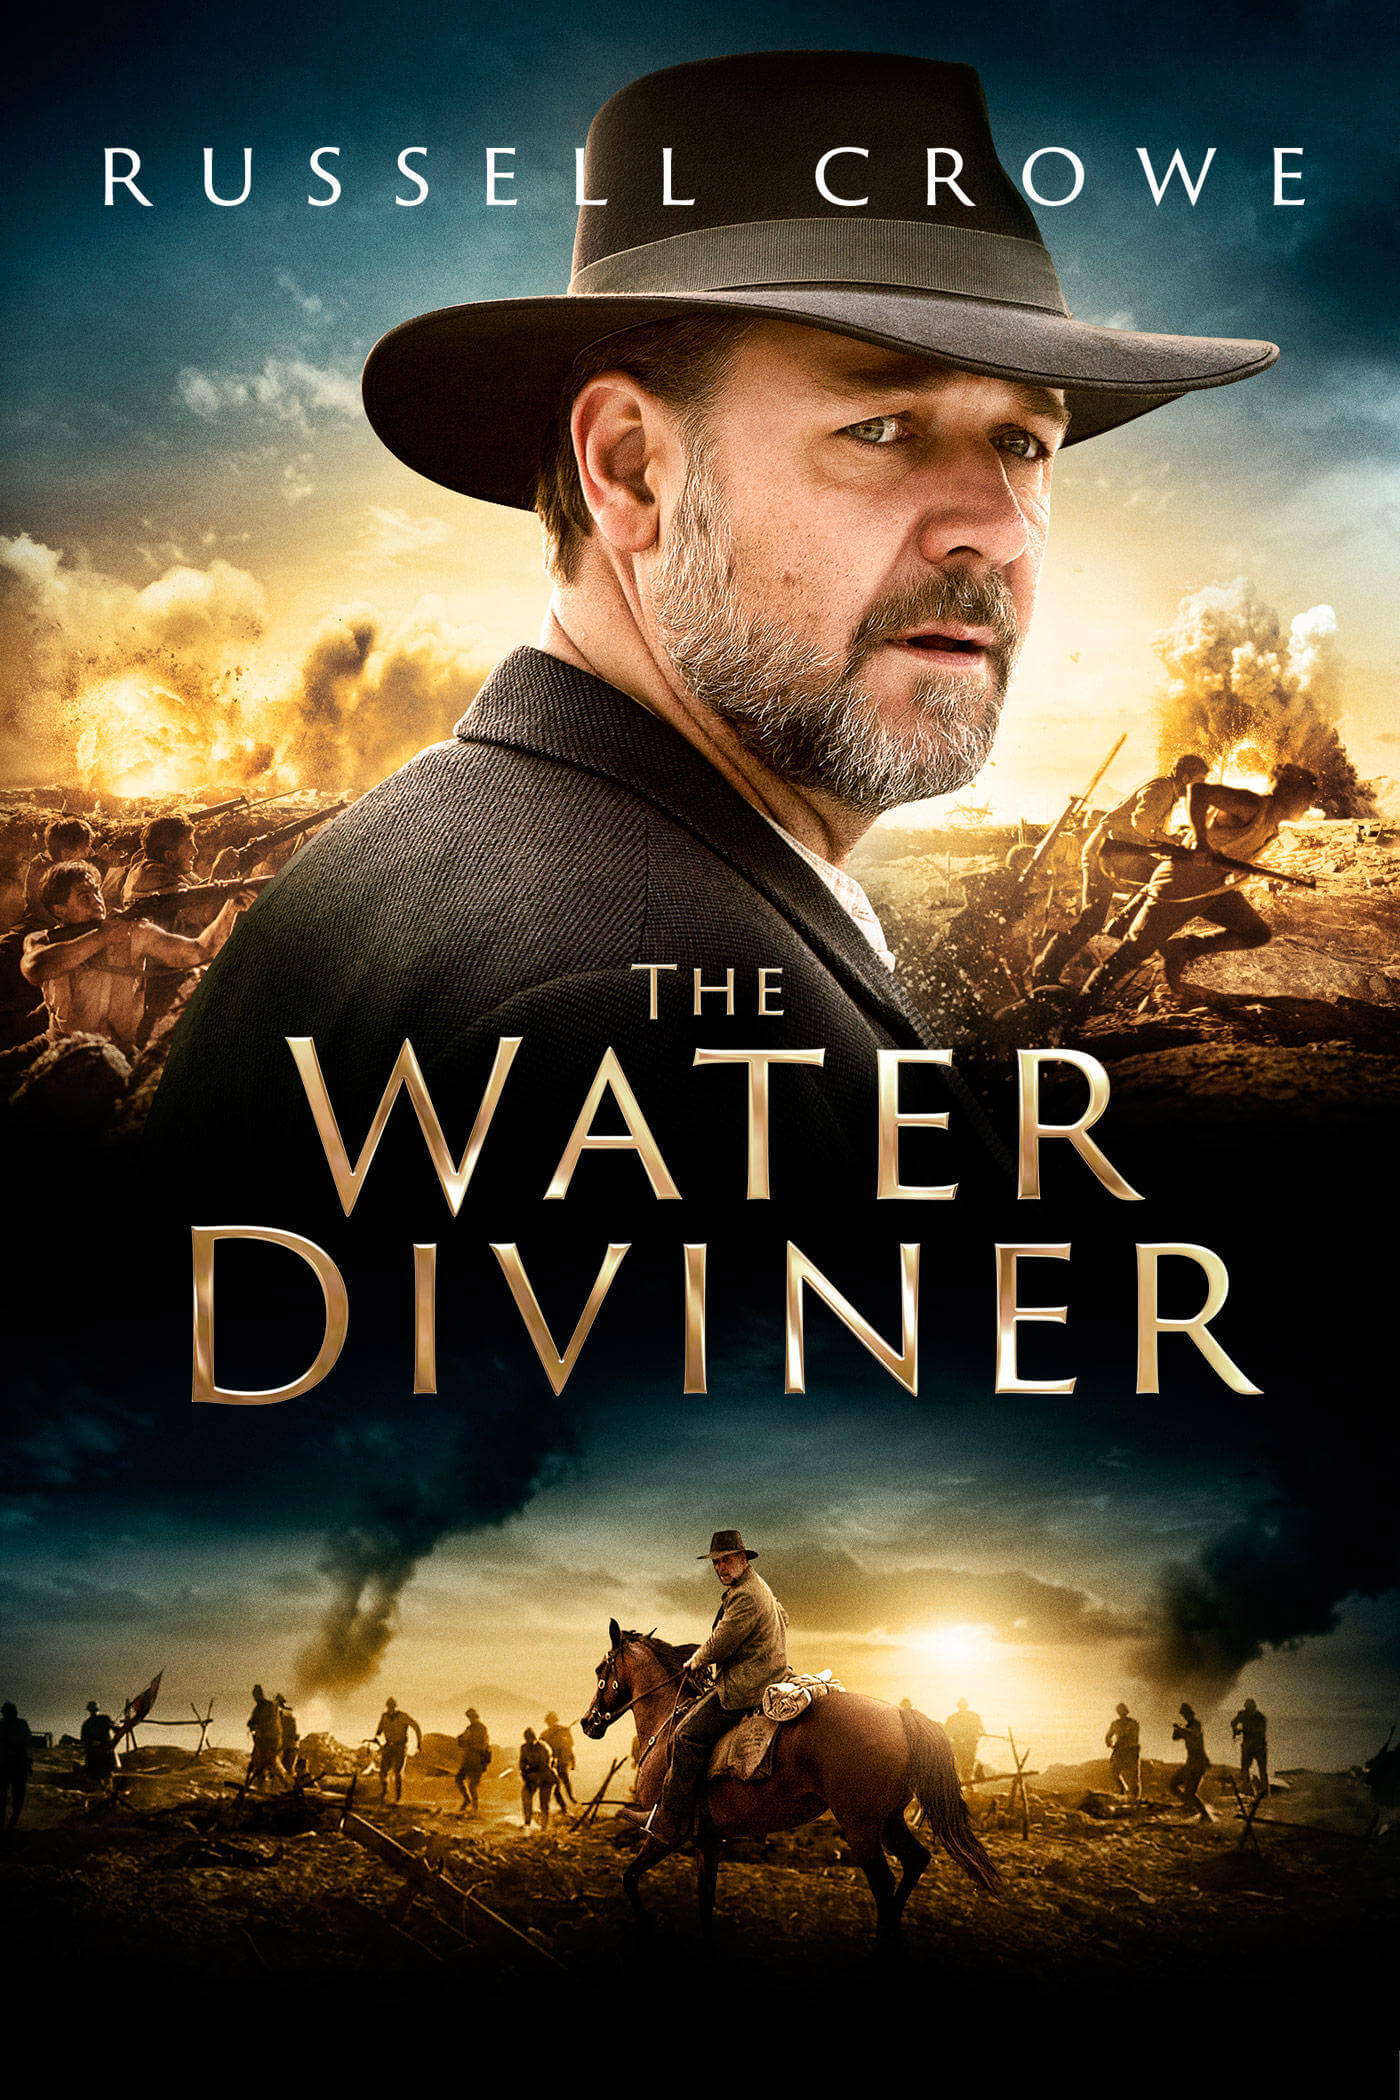 """Megan appeared as """"Fatma"""" opposite Russell Crowe in his directorial debut, The Water Diviner (2014)."""